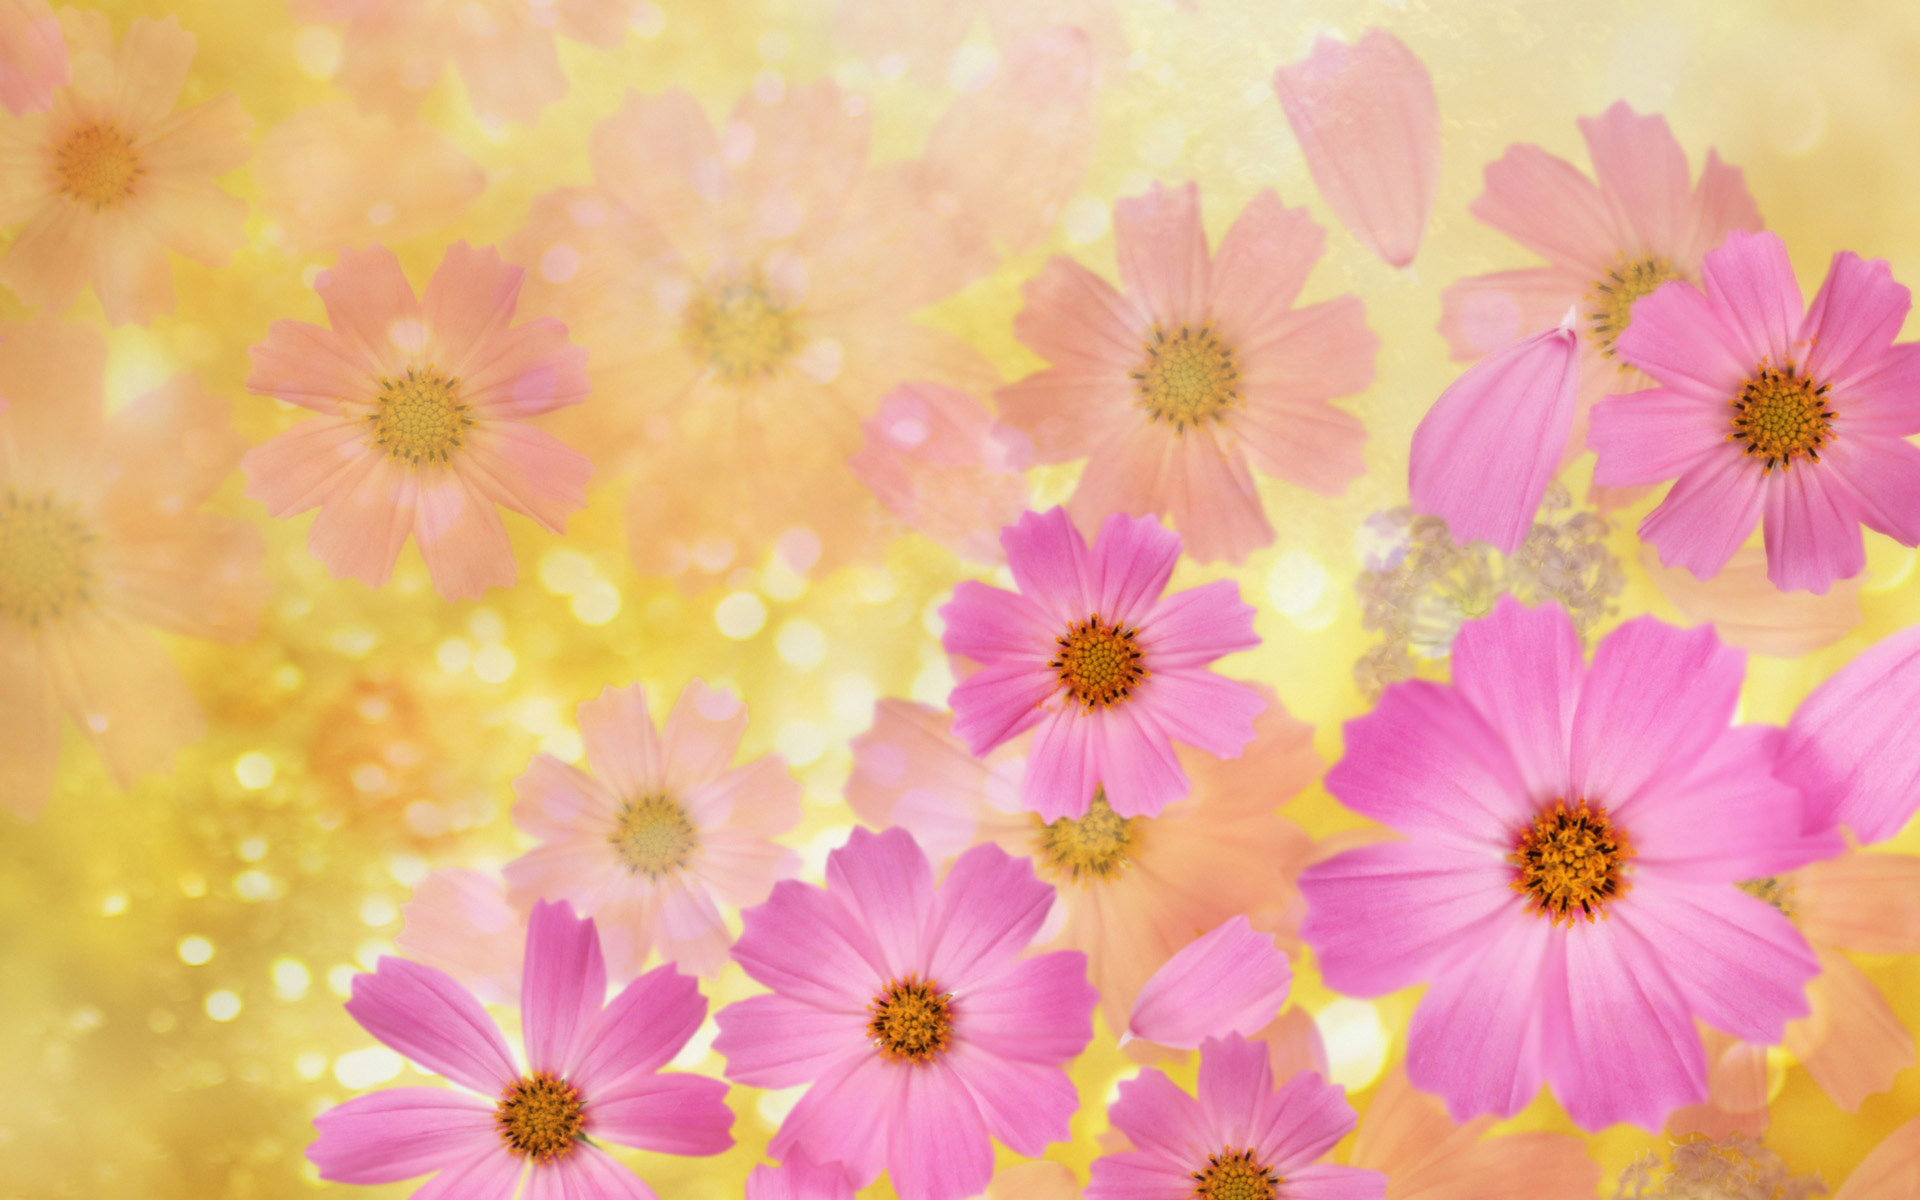 flower backgrounds | Cosmos flowers Wallpaper | High Quality